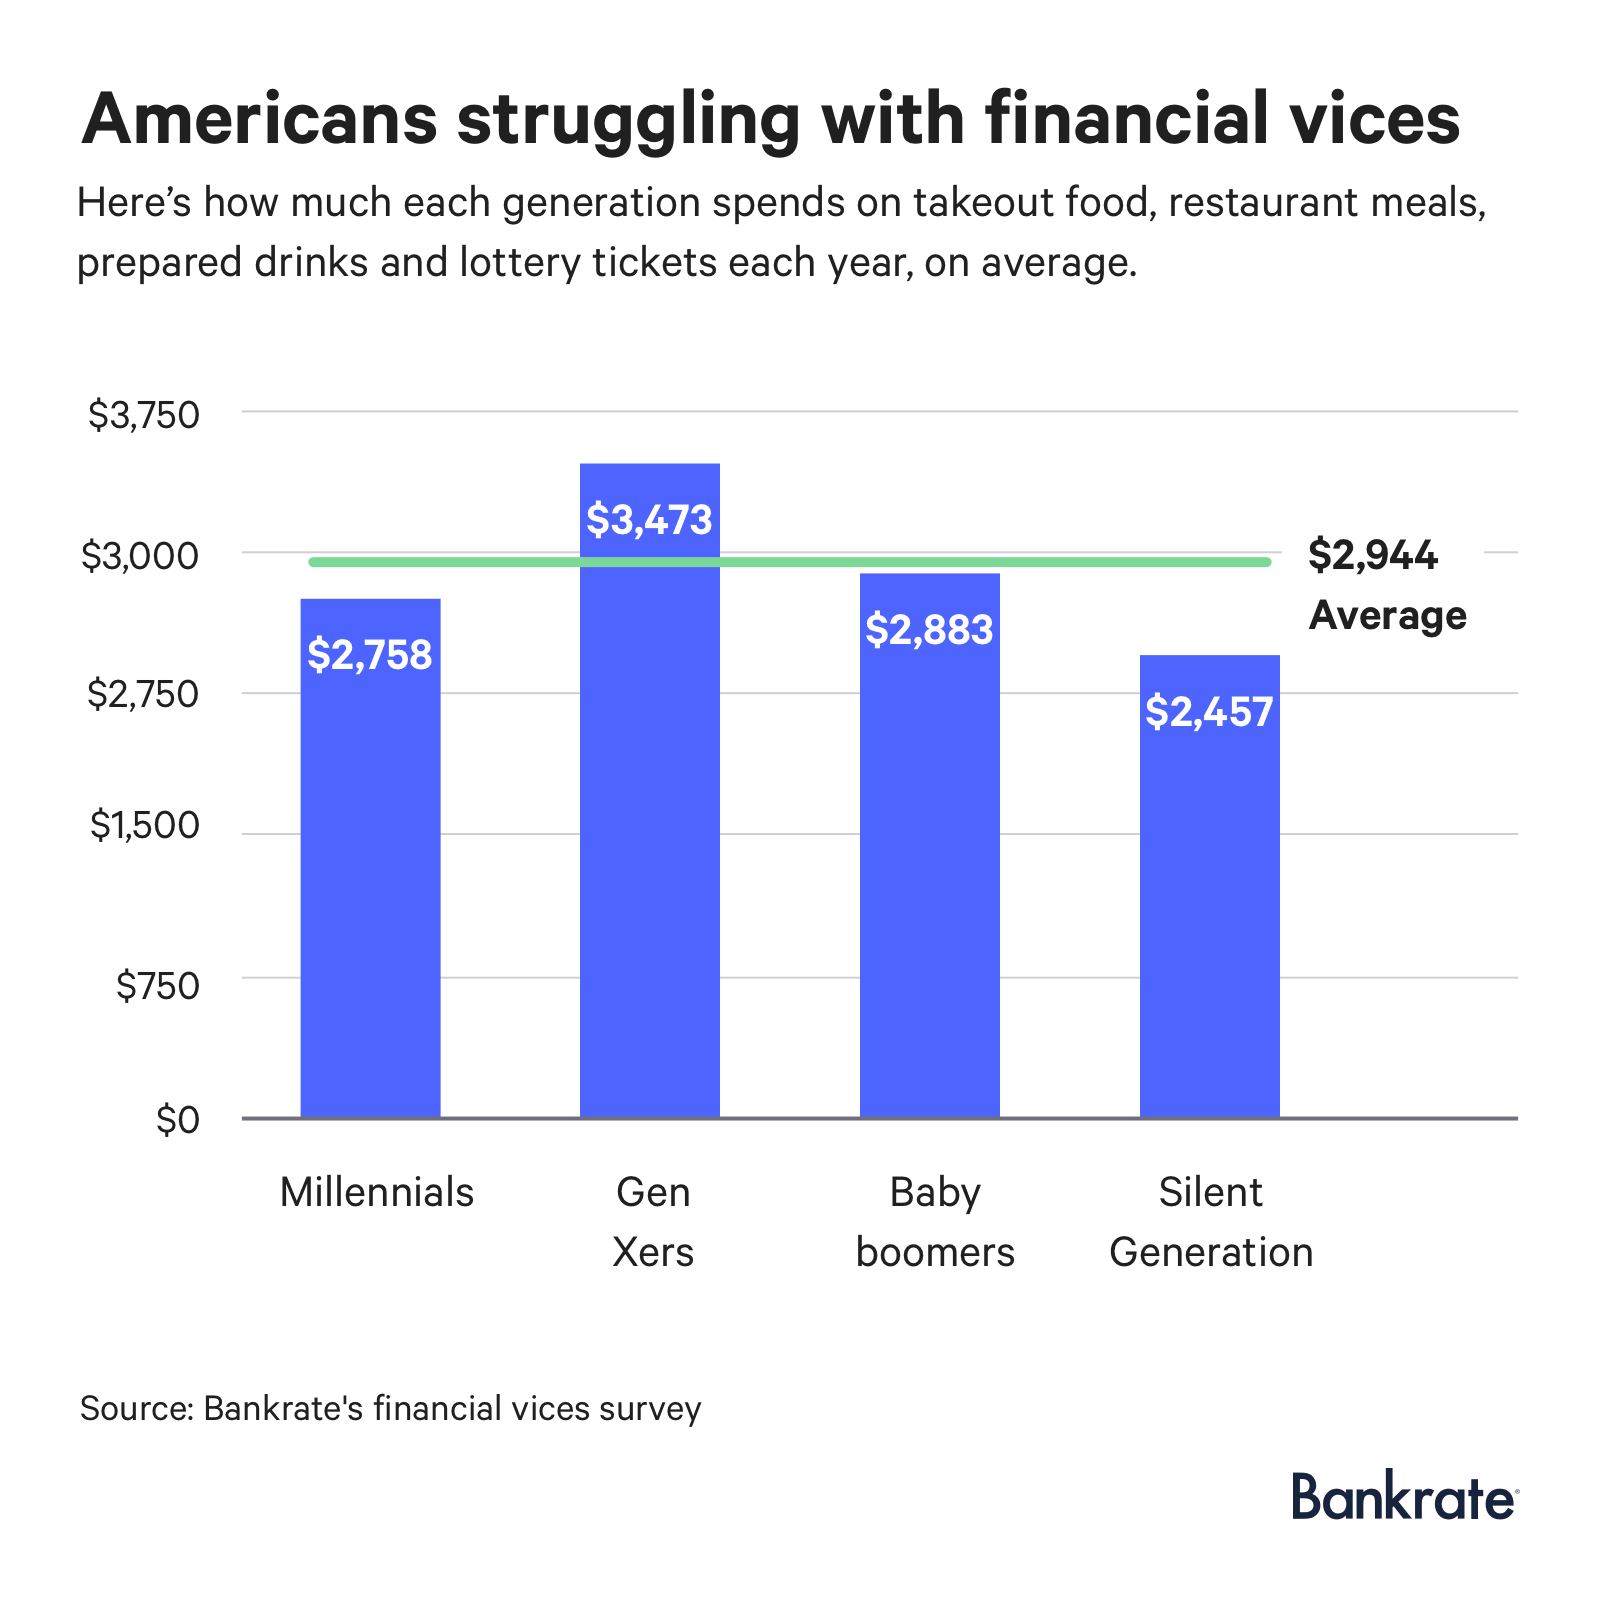 Survey: Here's How Much Americans Spend On Financial Vices